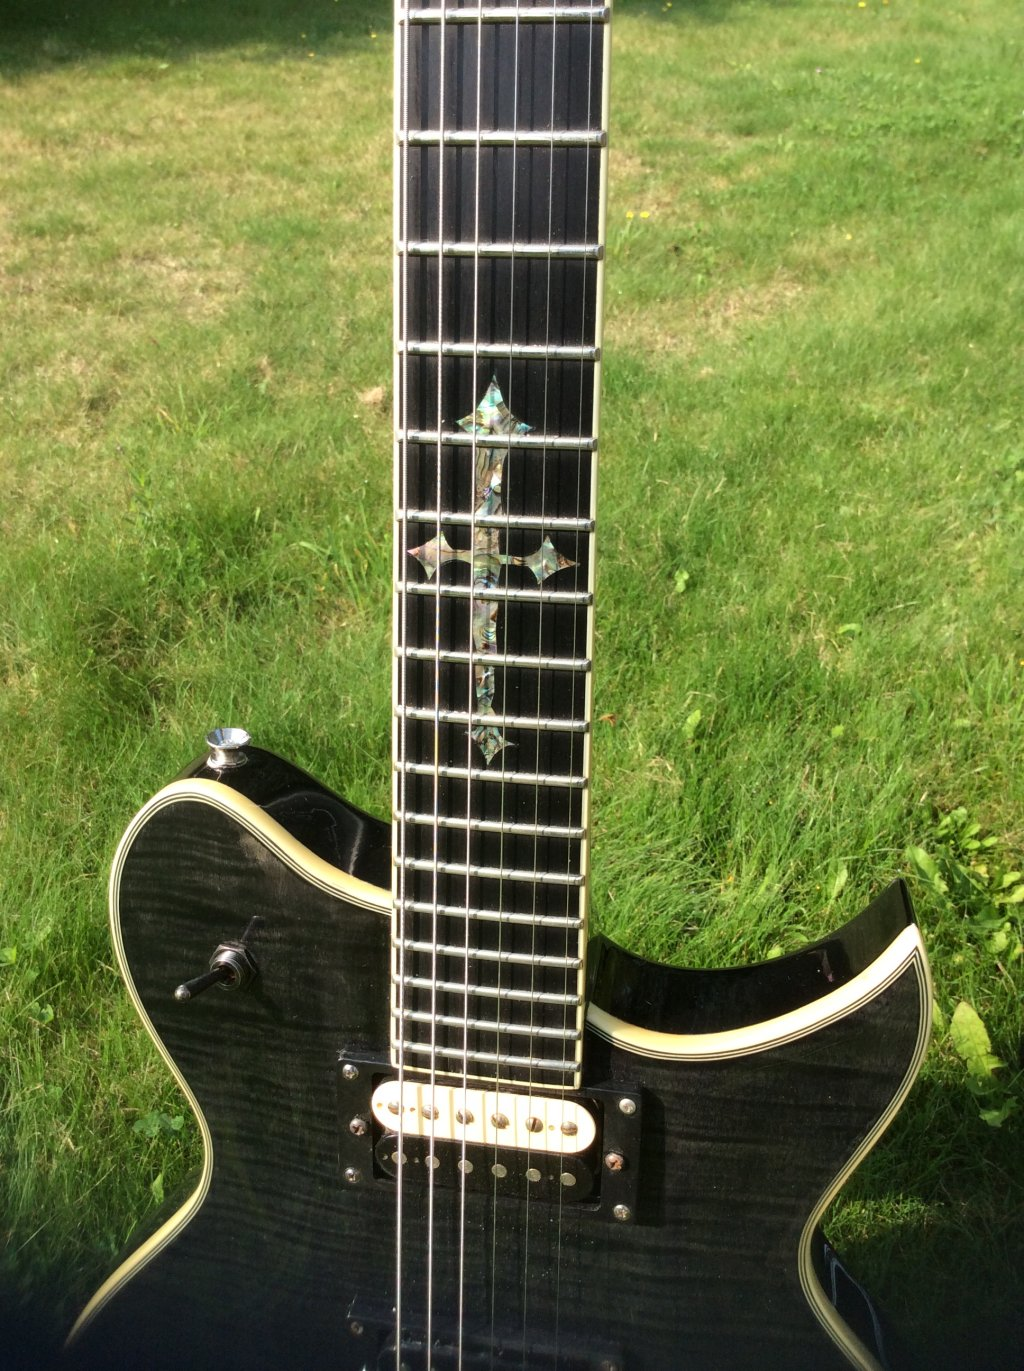 Fs Ft Price Drop Gibson Pickup 500t Zebra Pedals Parts Wiring Pics Of The Rolling Mill And Pickups To Follow